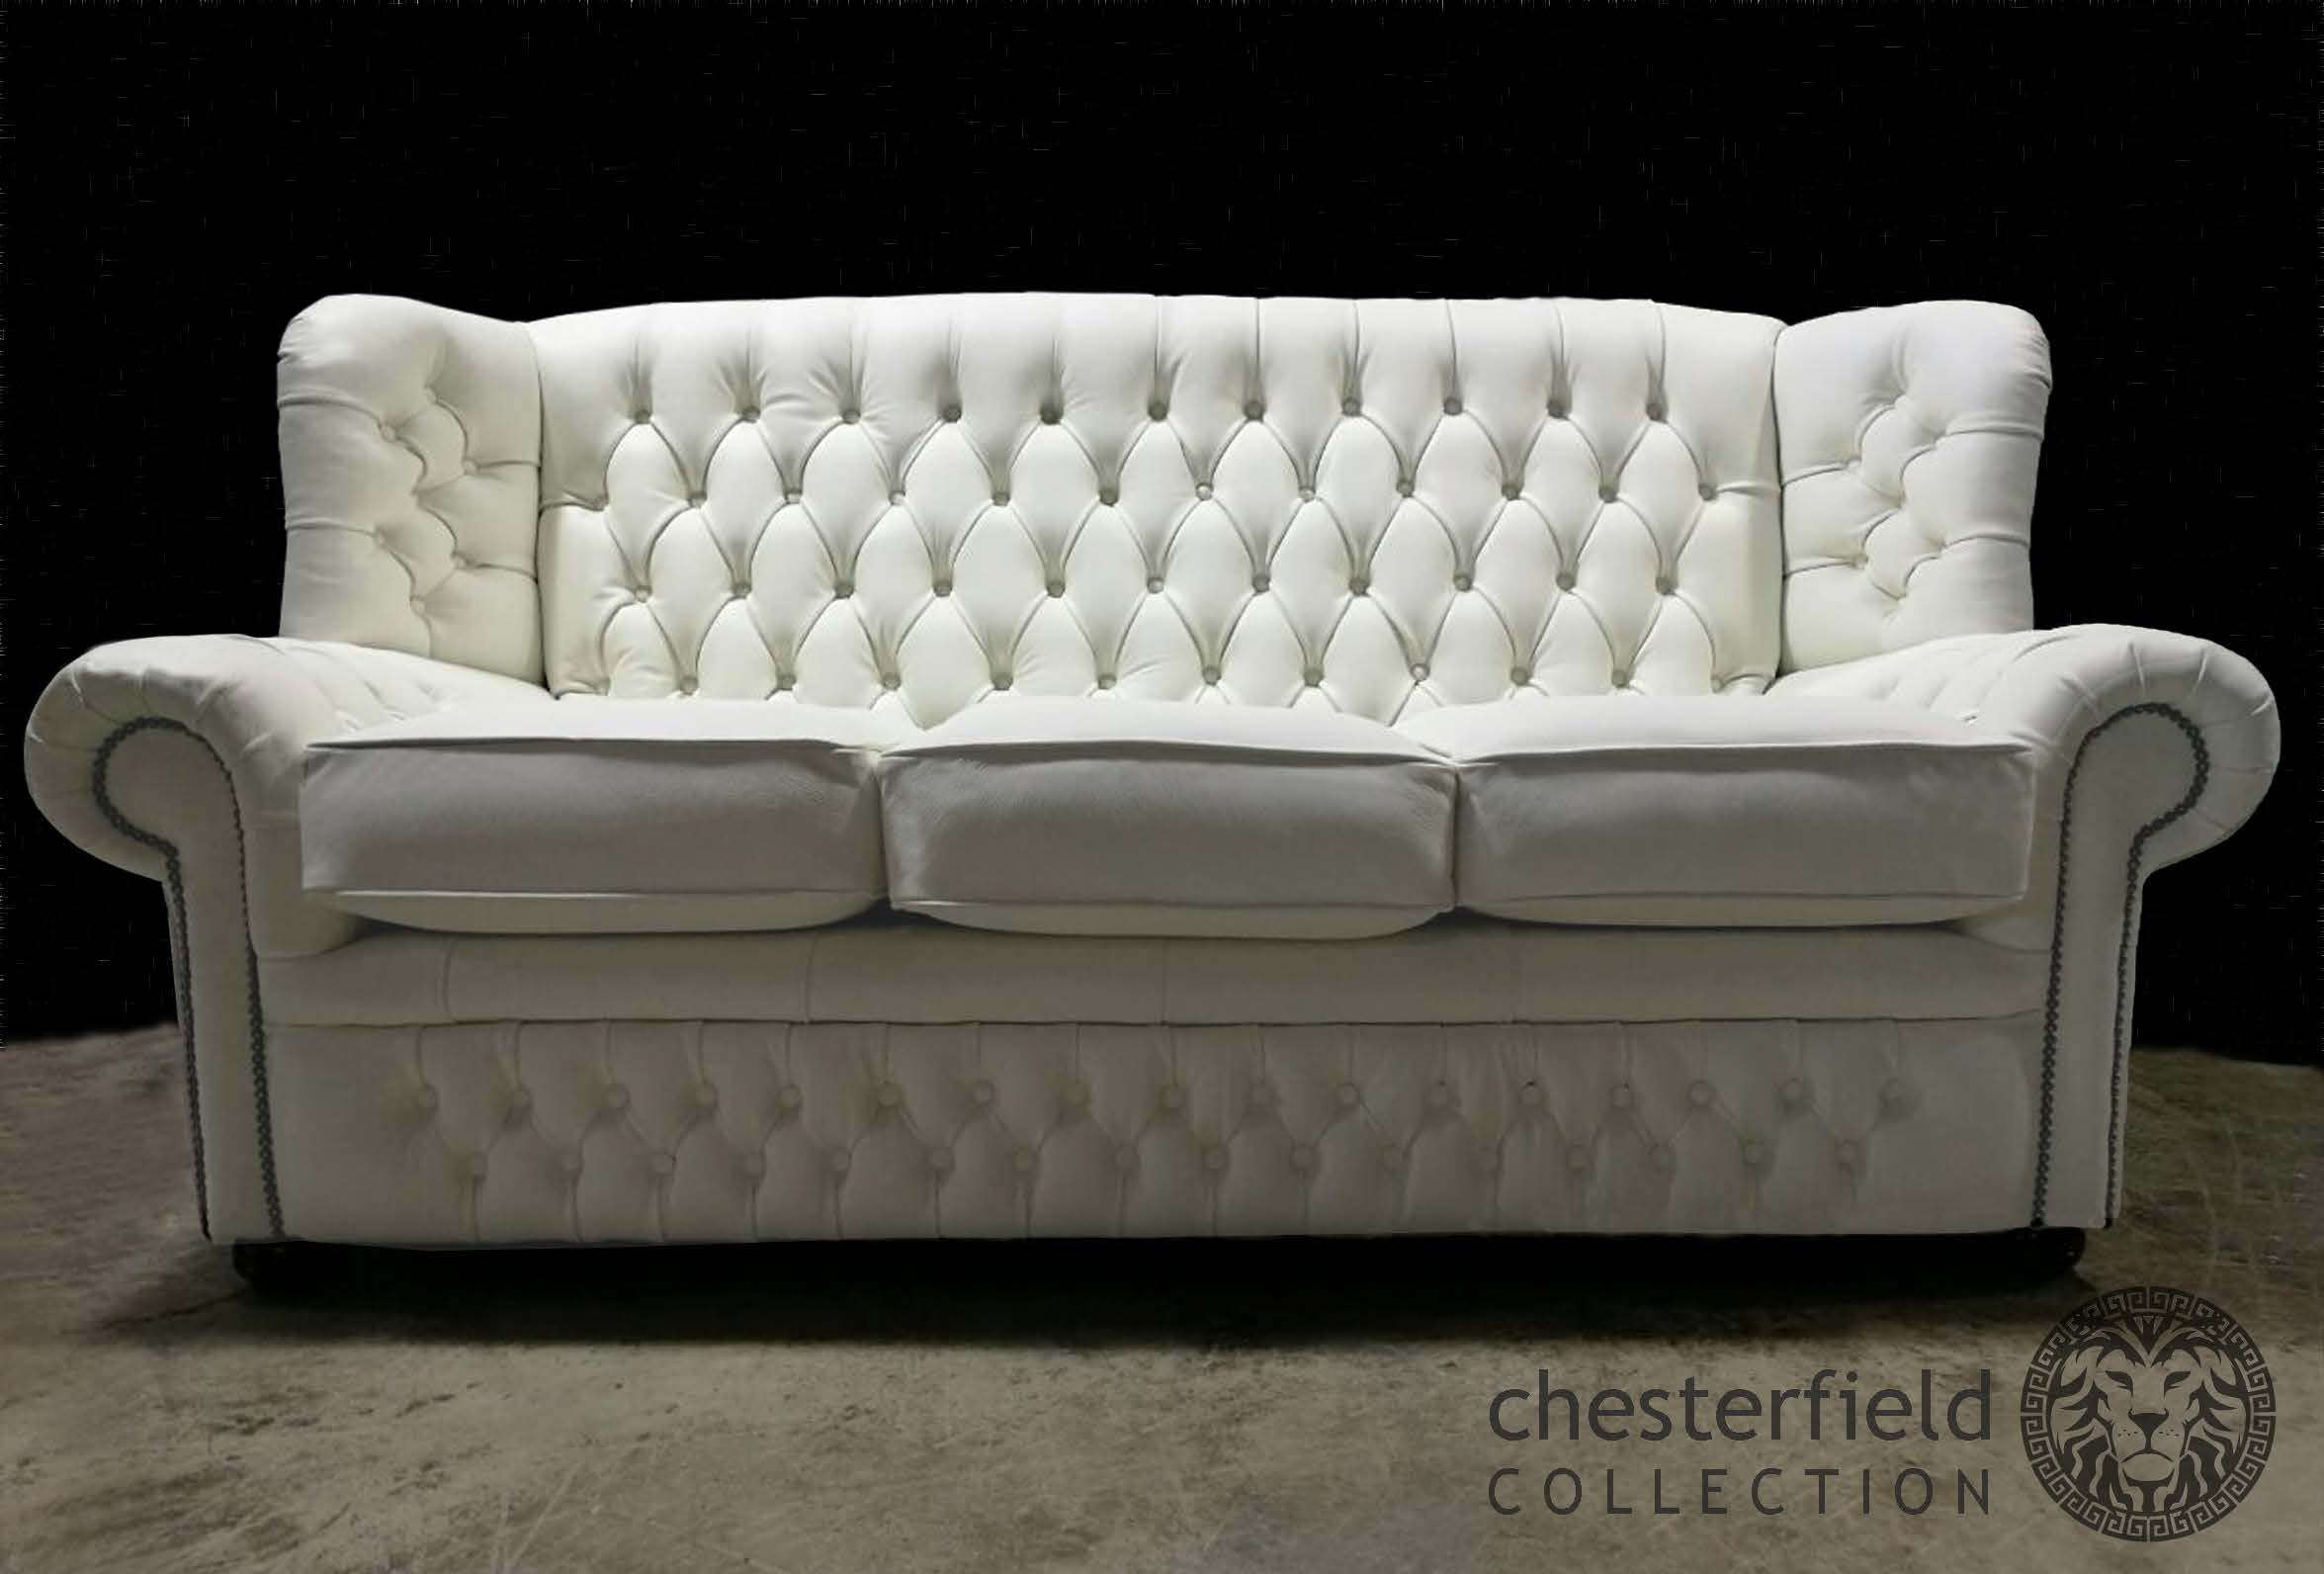 NEW CHESTERFIELD WHITE 22/03/17